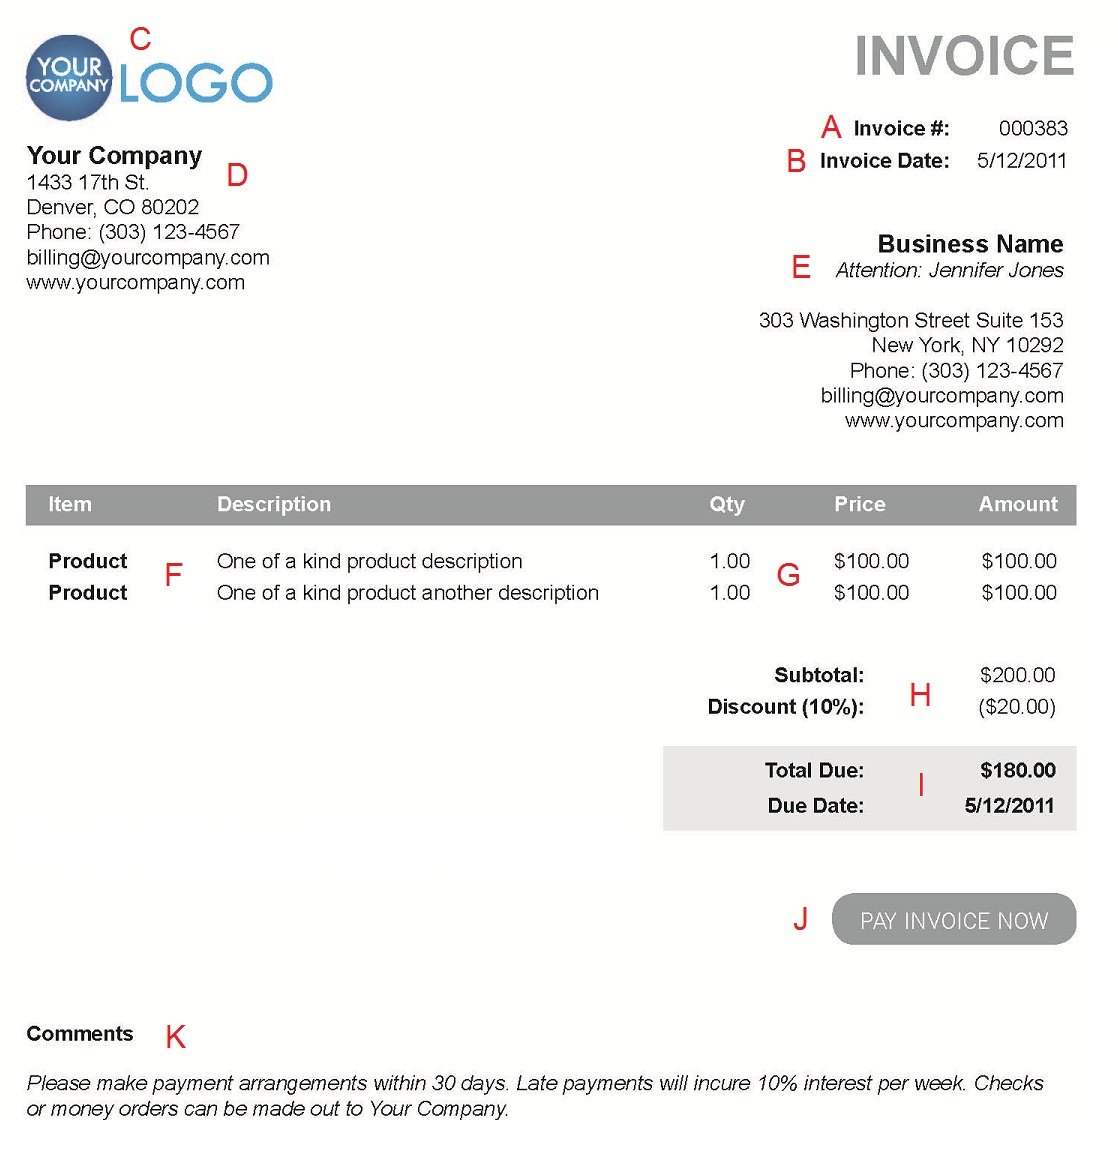 Darkfaderus  Prepossessing The  Different Sections Of An Electronic Payment Invoice With Engaging A  With Awesome Invoice Payable To Also Sample Of An Invoice Statement In Addition How To Invoice Uk And Infiniti Q Invoice Price As Well As Invoice In Advance Additionally Automated Invoice From Paysimplecom With Darkfaderus  Engaging The  Different Sections Of An Electronic Payment Invoice With Awesome A  And Prepossessing Invoice Payable To Also Sample Of An Invoice Statement In Addition How To Invoice Uk From Paysimplecom